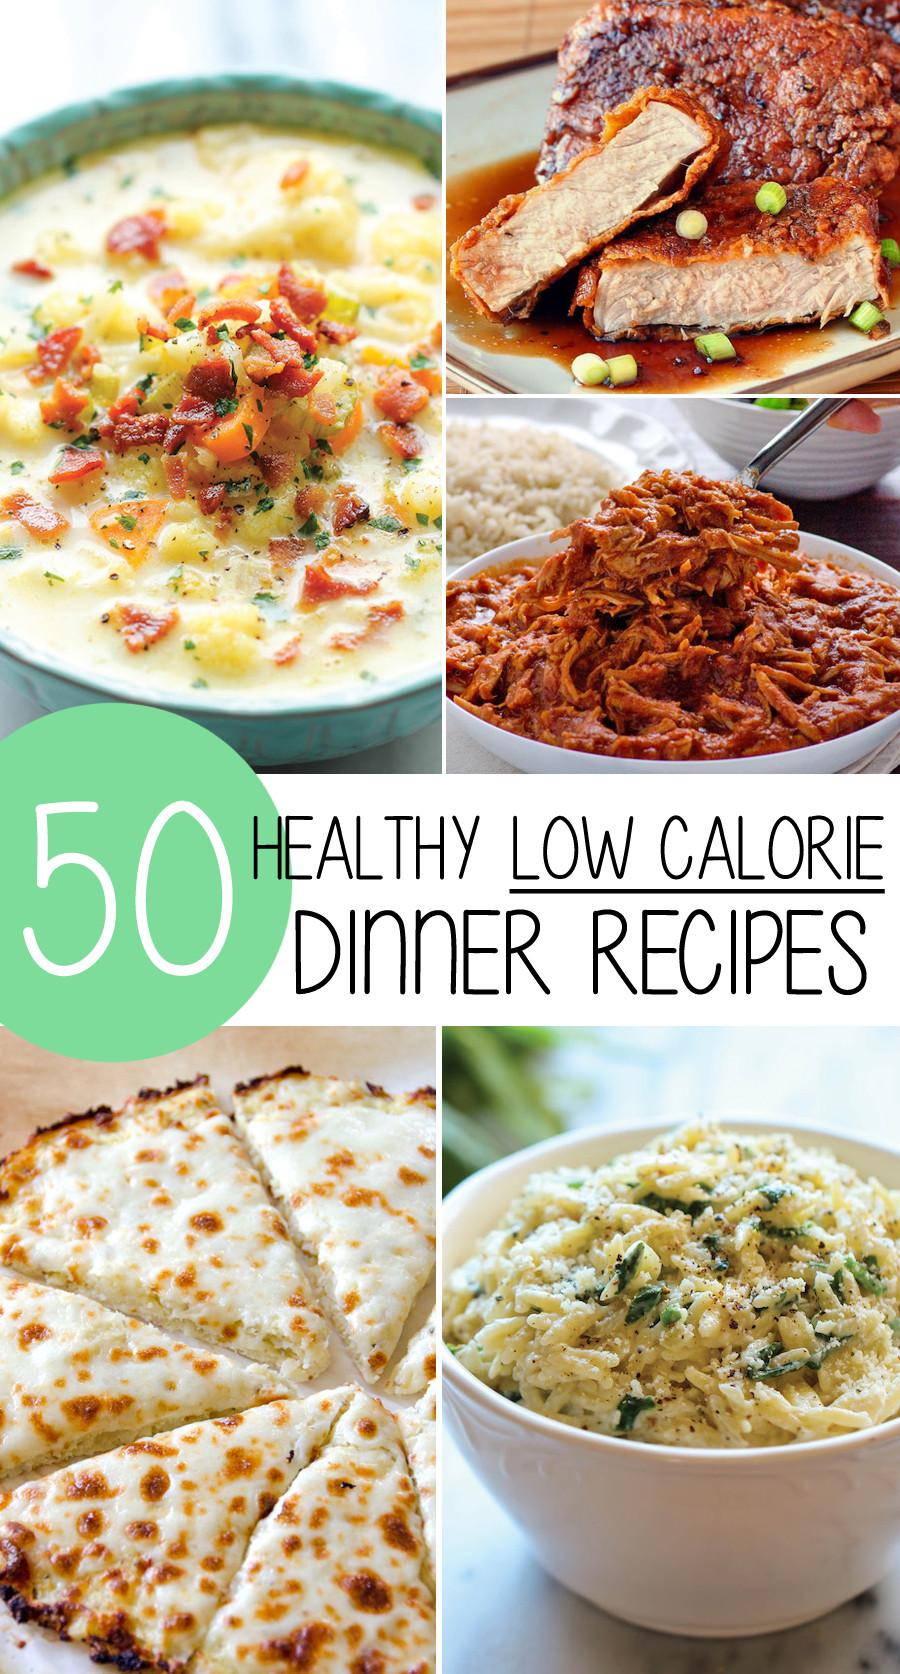 Healthy Dinners For Weight Loss  50 Healthy Low Calorie Weight Loss Dinner Recipes